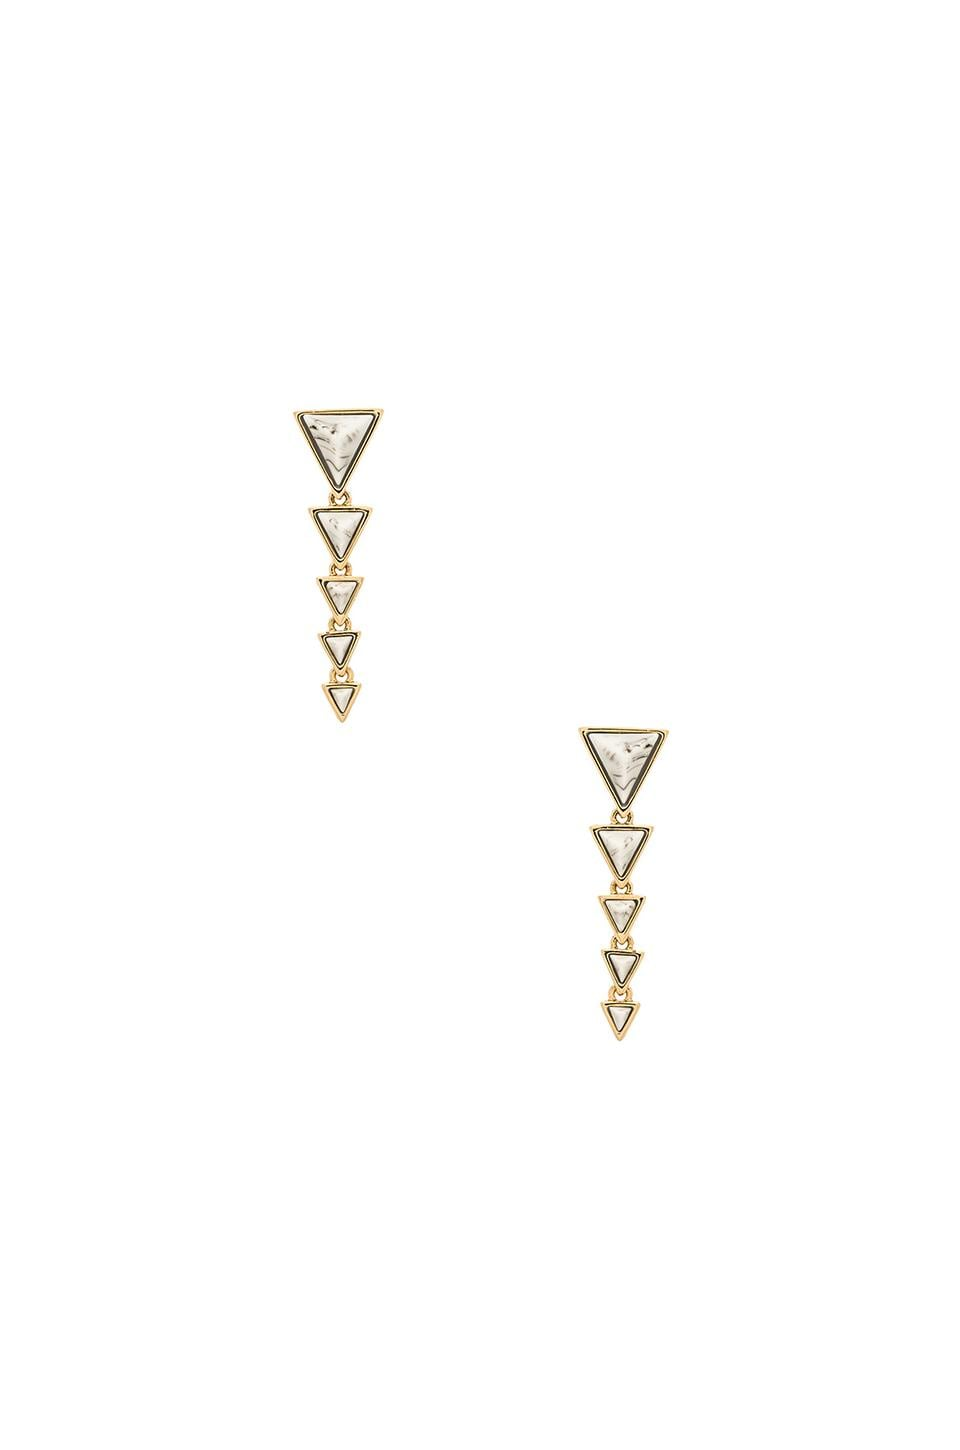 House of Harlow 1960 House of Harlow Meteora Drop Earring in Howlite